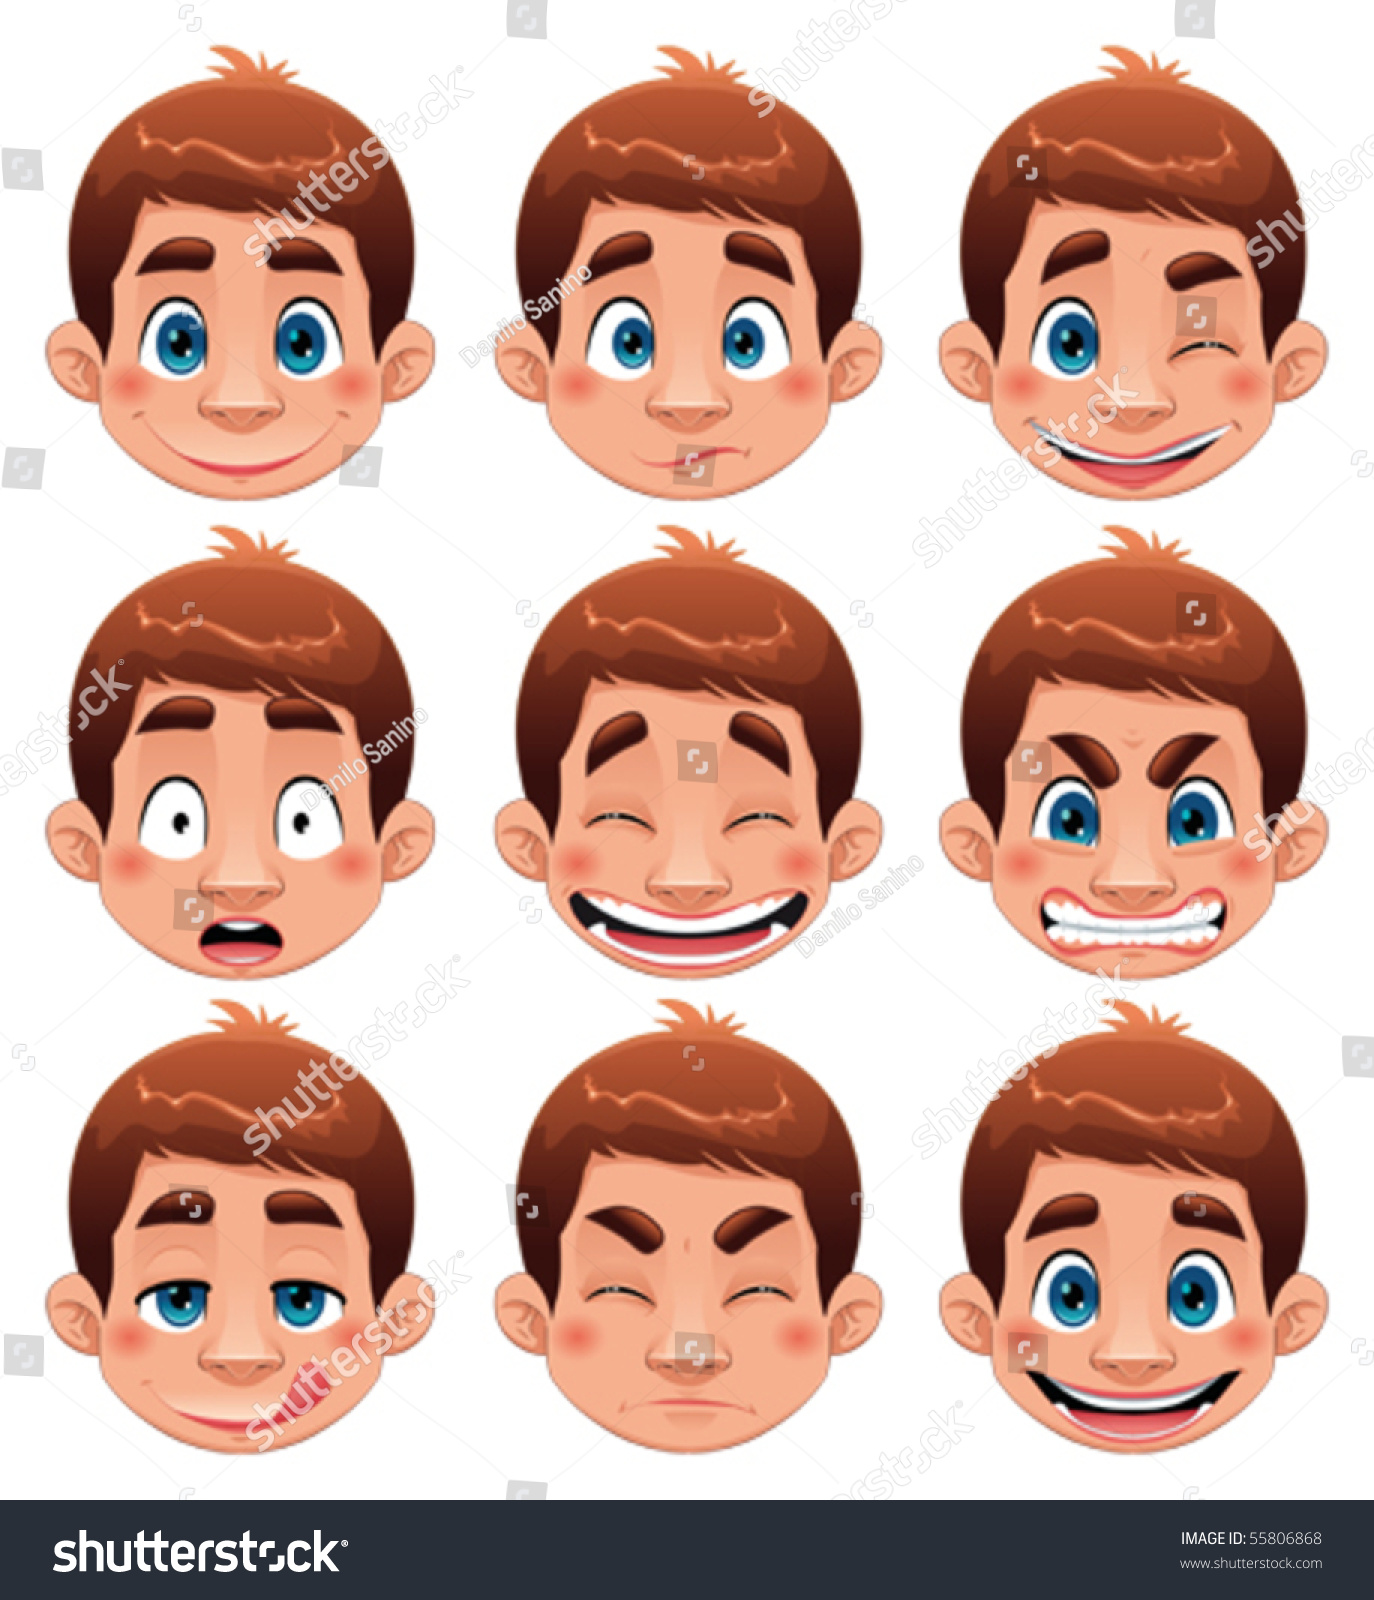 Boy expressions funny cartoon and vector character